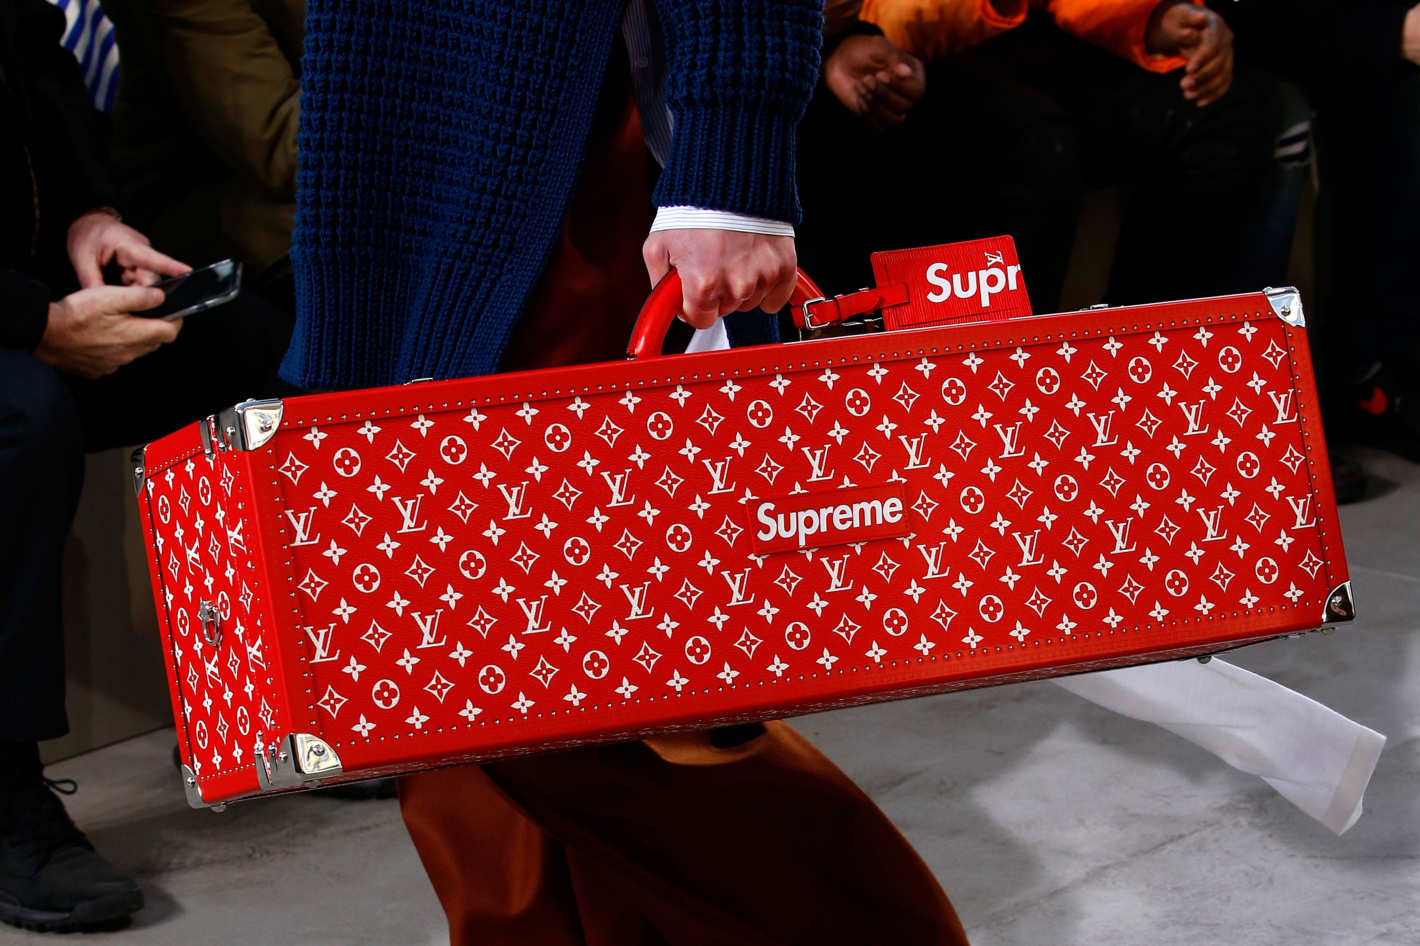 All Supreme X Louis Vuitton U.S. Pop-Up Stores Have Been Cancelled